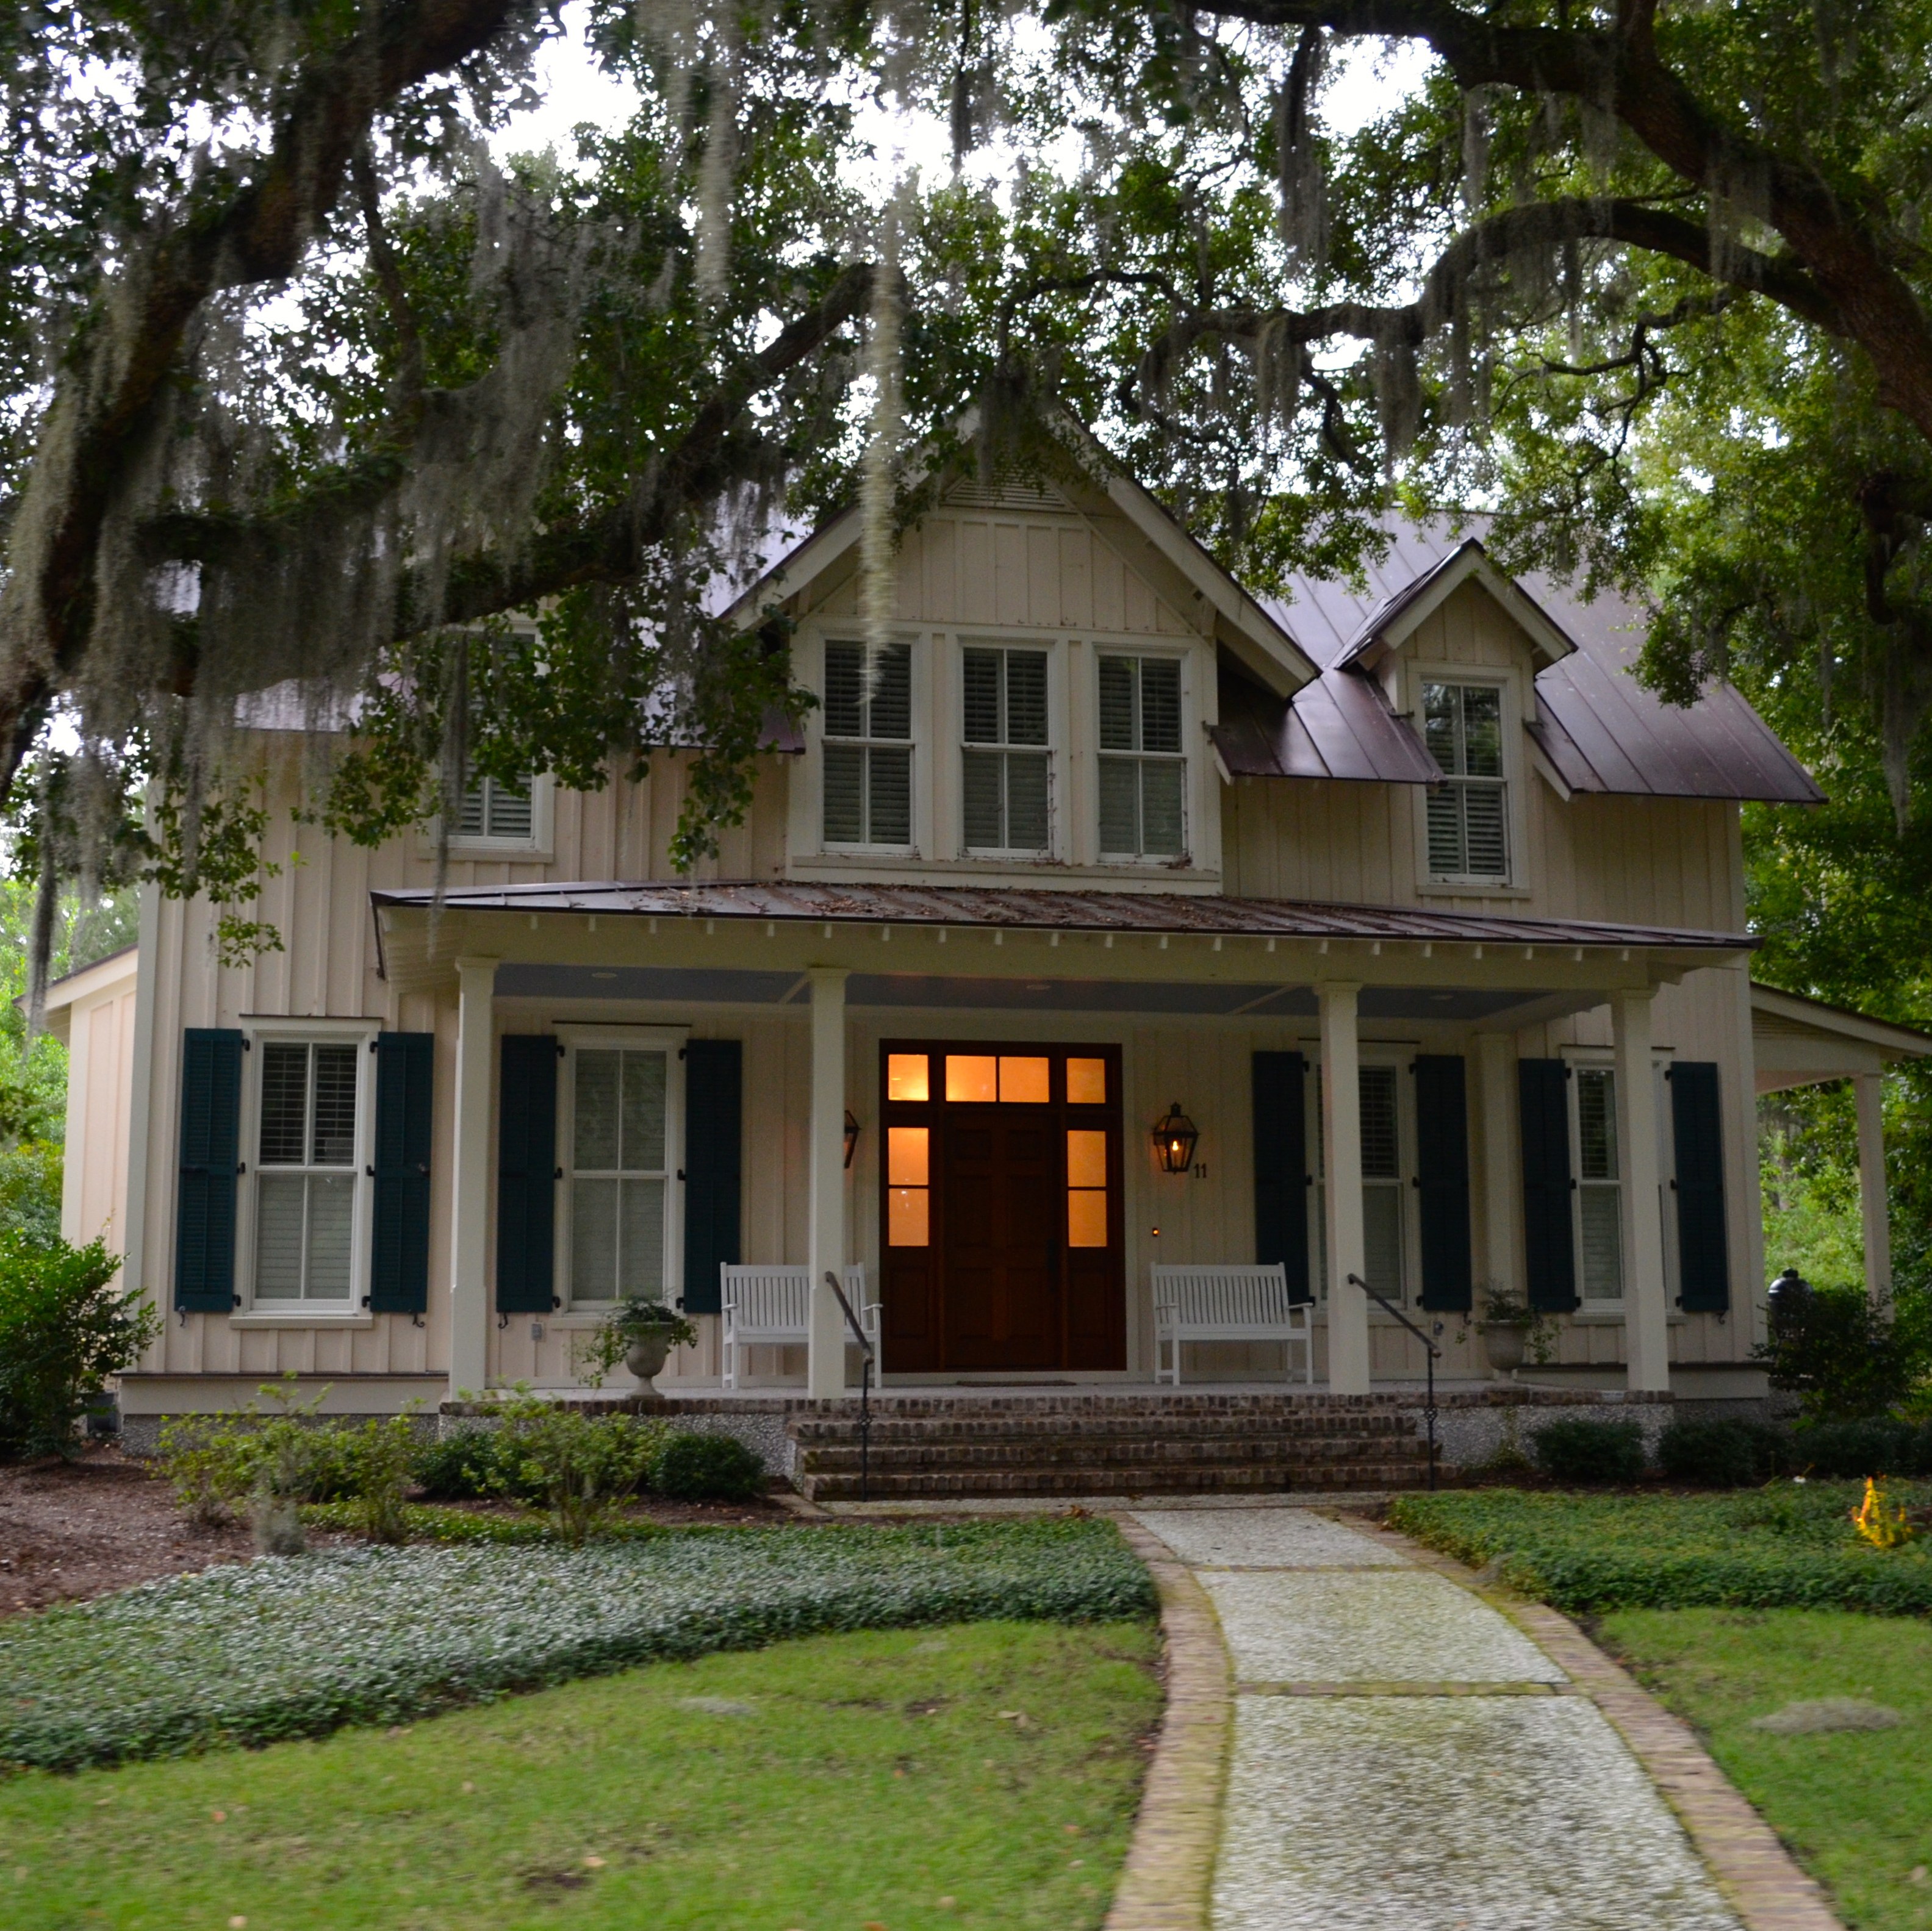 Lowcountry Carriage House: THE LOVELY LOWCOUNTRY HOMES OF PALMETTO BLUFF